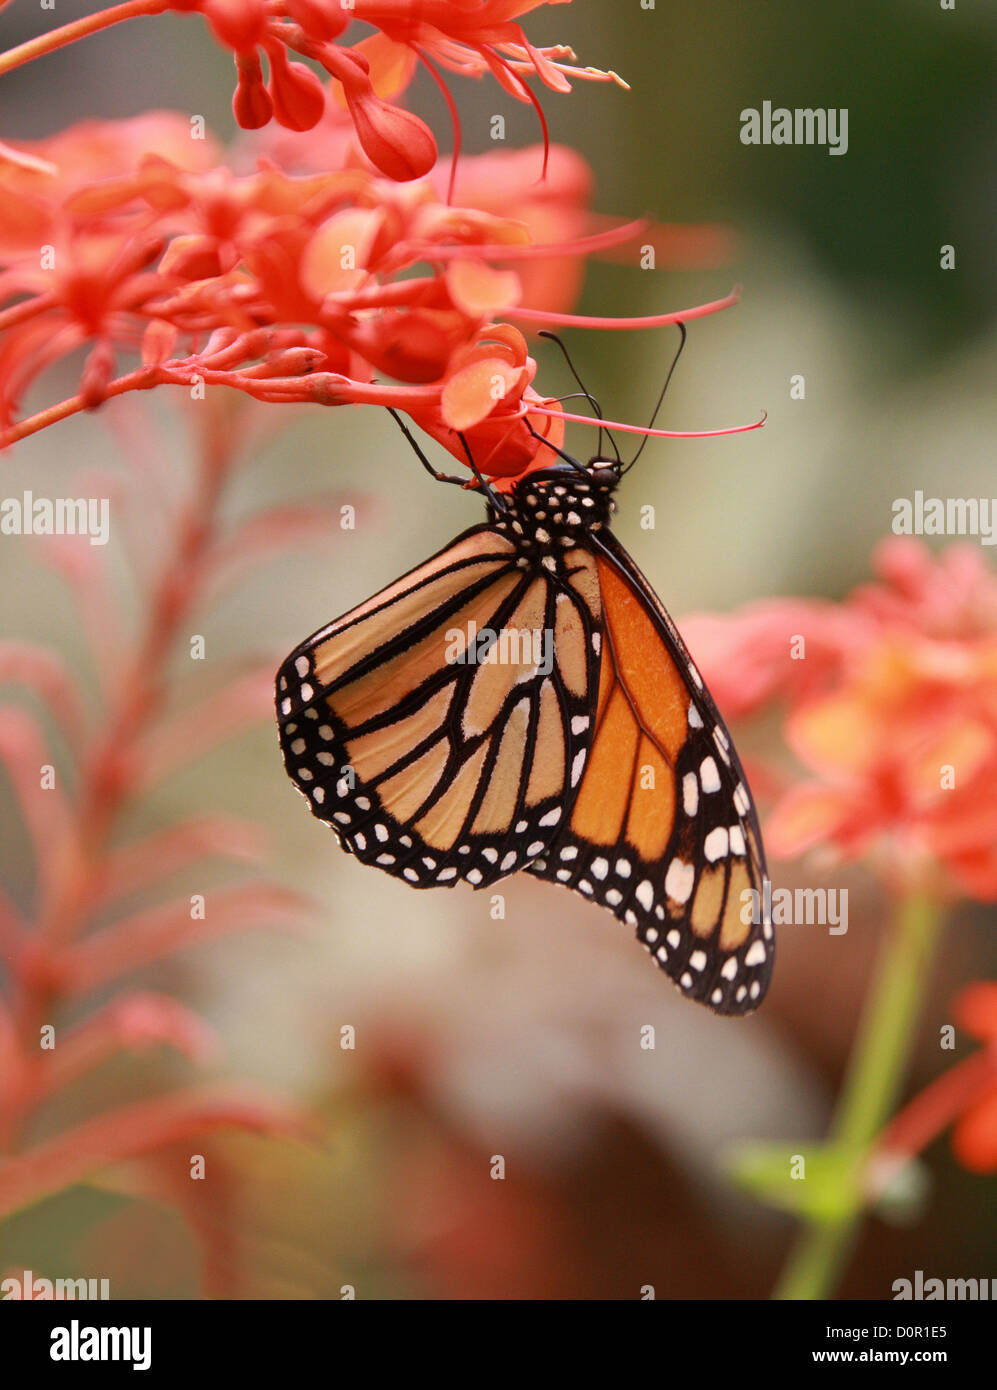 Monarch Butterfly, Danaus plexippus, Papilionoidea, Nymphalidae, Lepidoptera. Aka the Milkweed or Wanderer Butterfly. - Stock Image